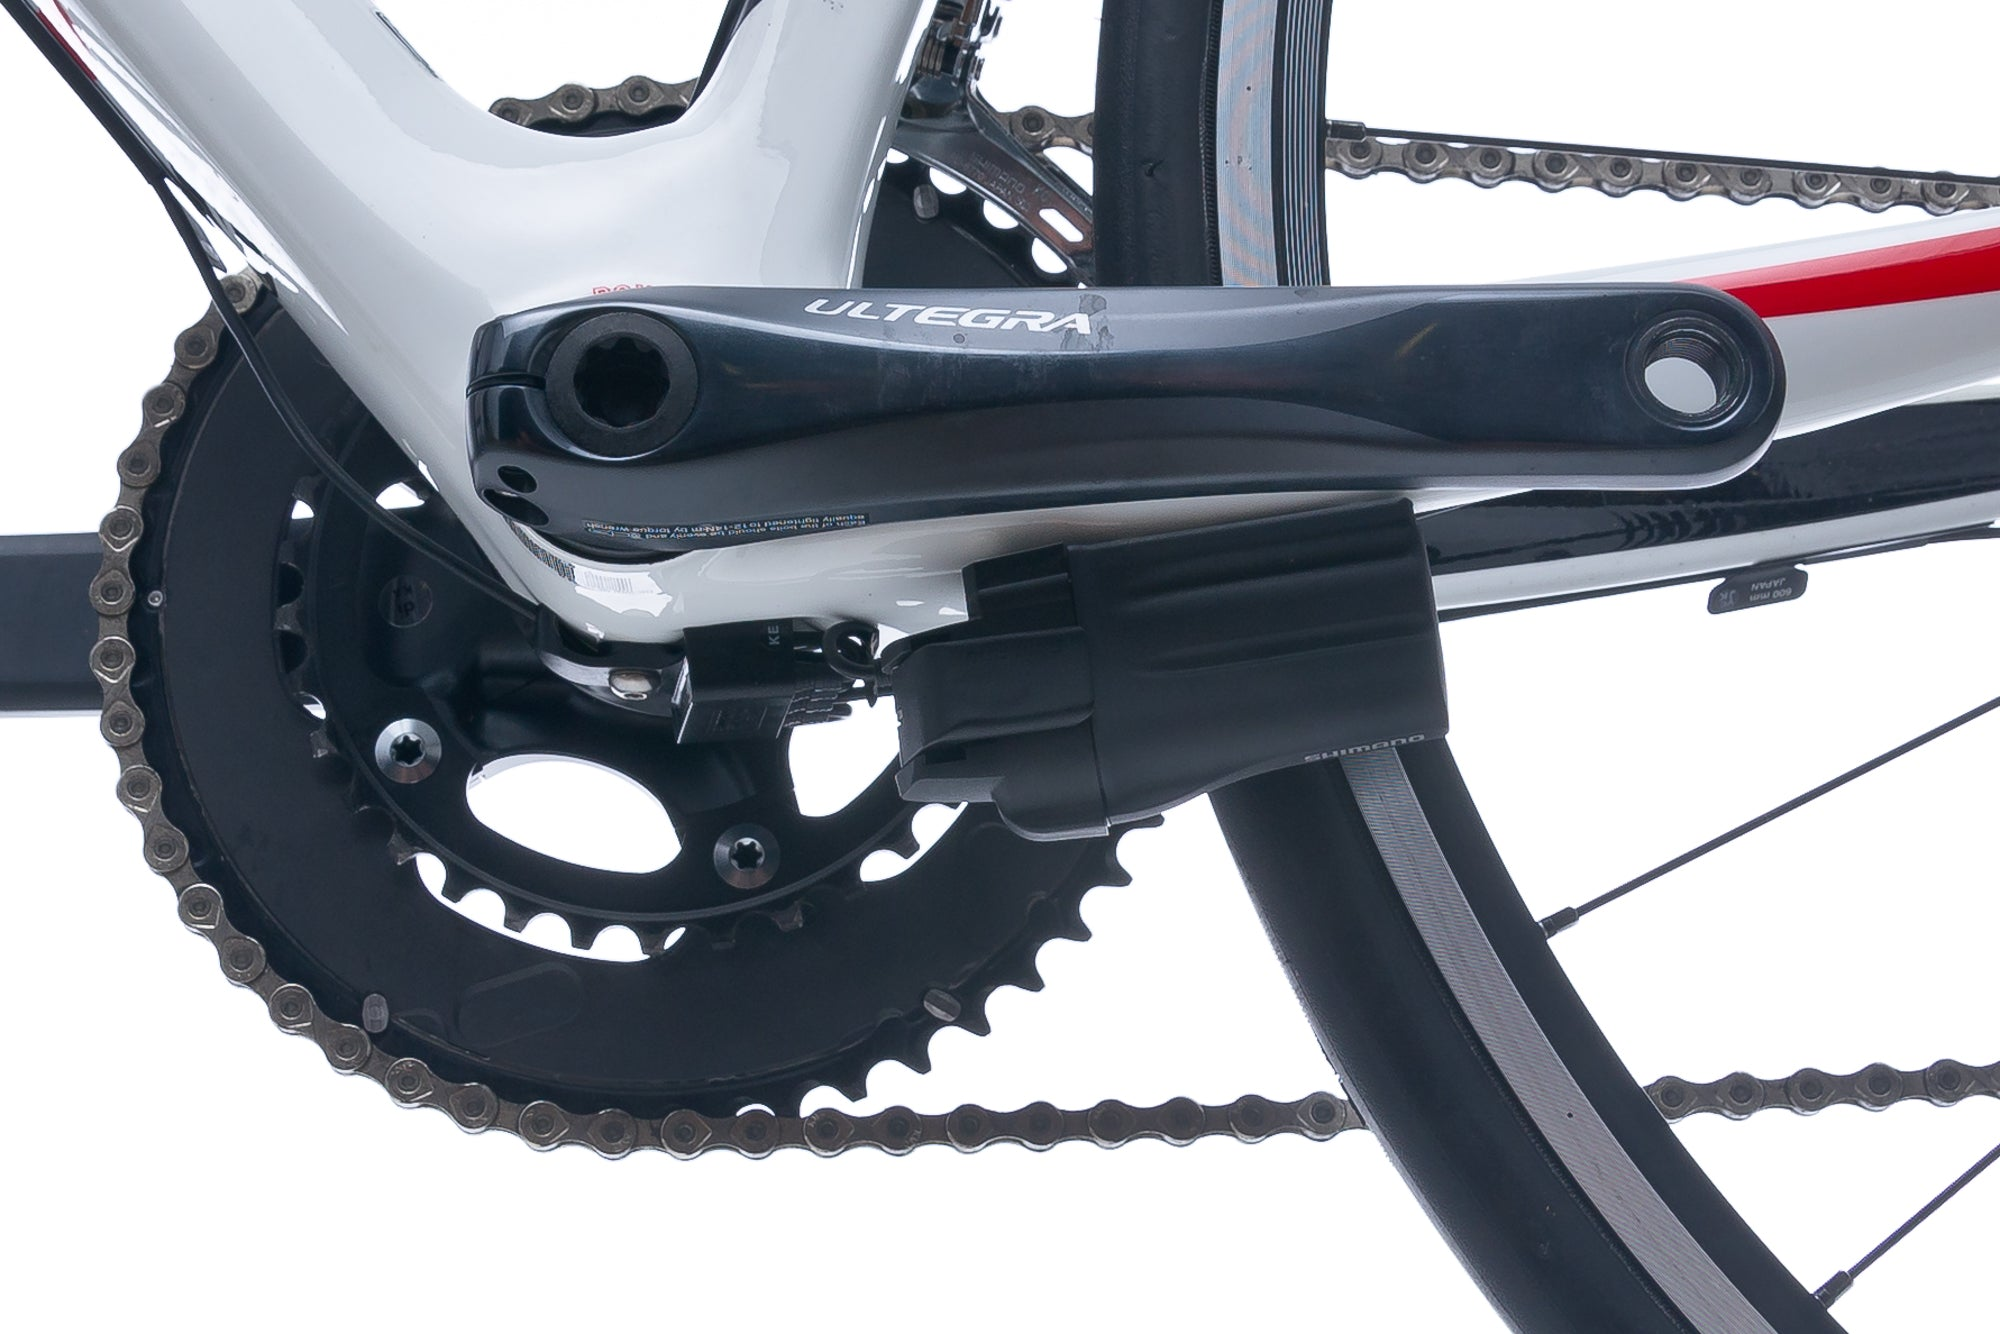 Giant Defy Composite Medium Bike - 2013